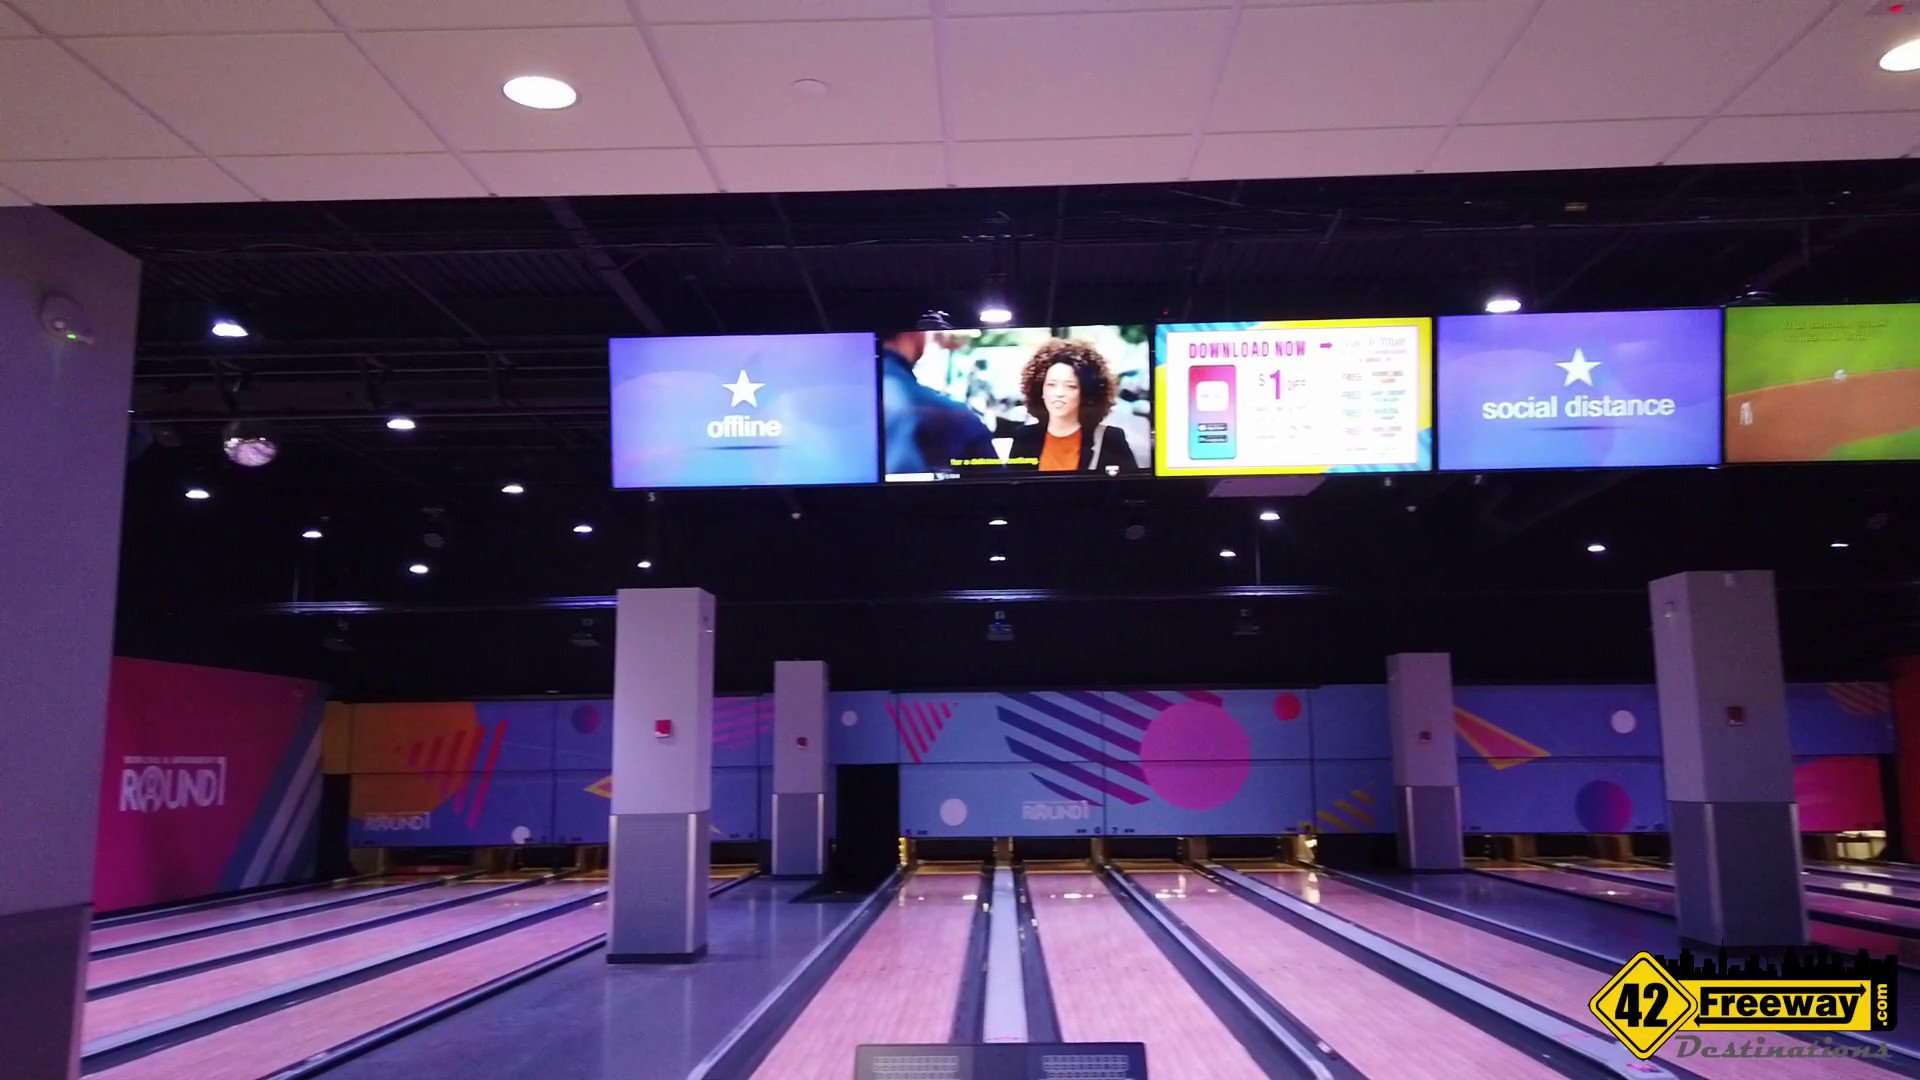 Round 1 Entertainment Center at the Deptford Mall is OPEN!   Video Walkthrough Tour!